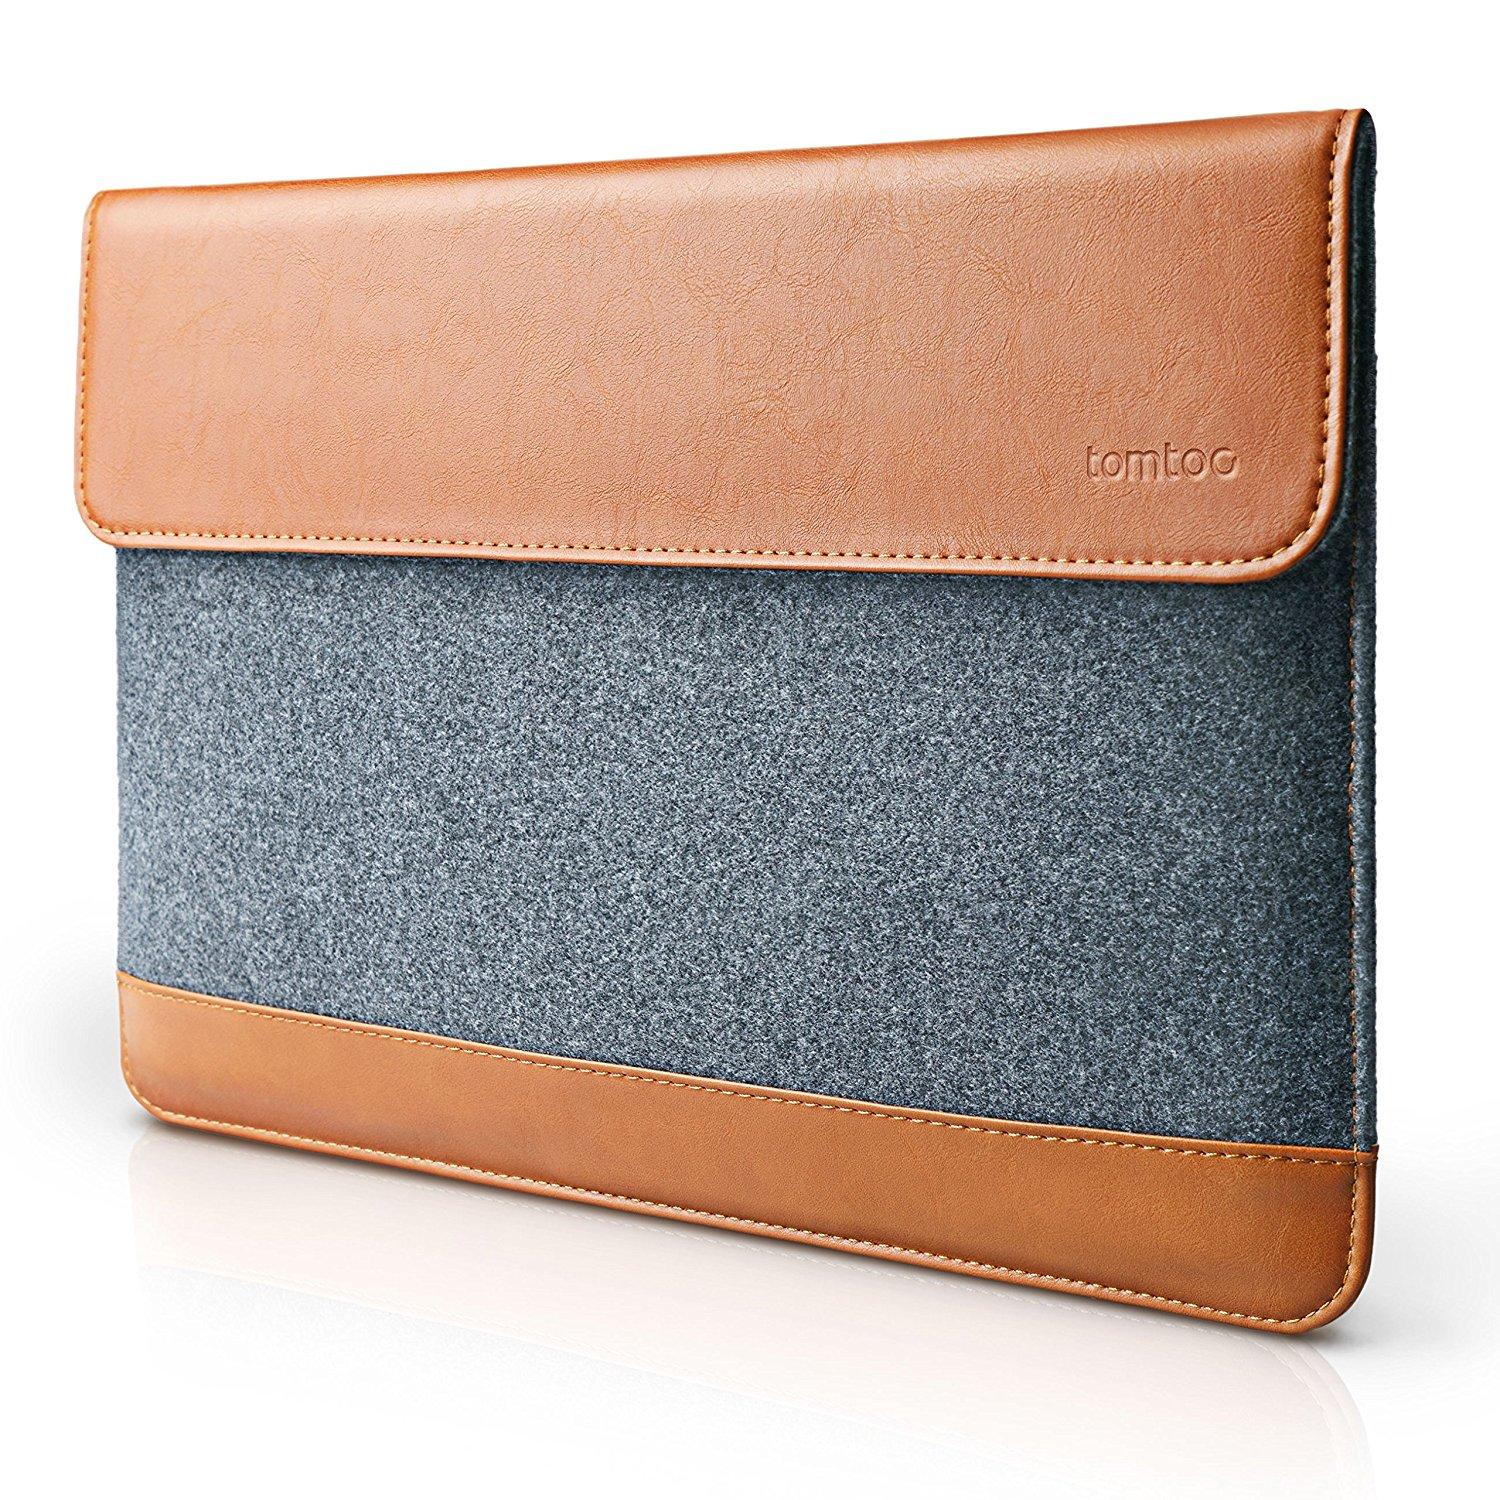 timeless design 215c7 3282f tomtoc A15 Ultra Slim Envelope Sleeve /Felt & PU Leather/ Protective  Carrying Bag with Accessory Pocket/ Gray Brown